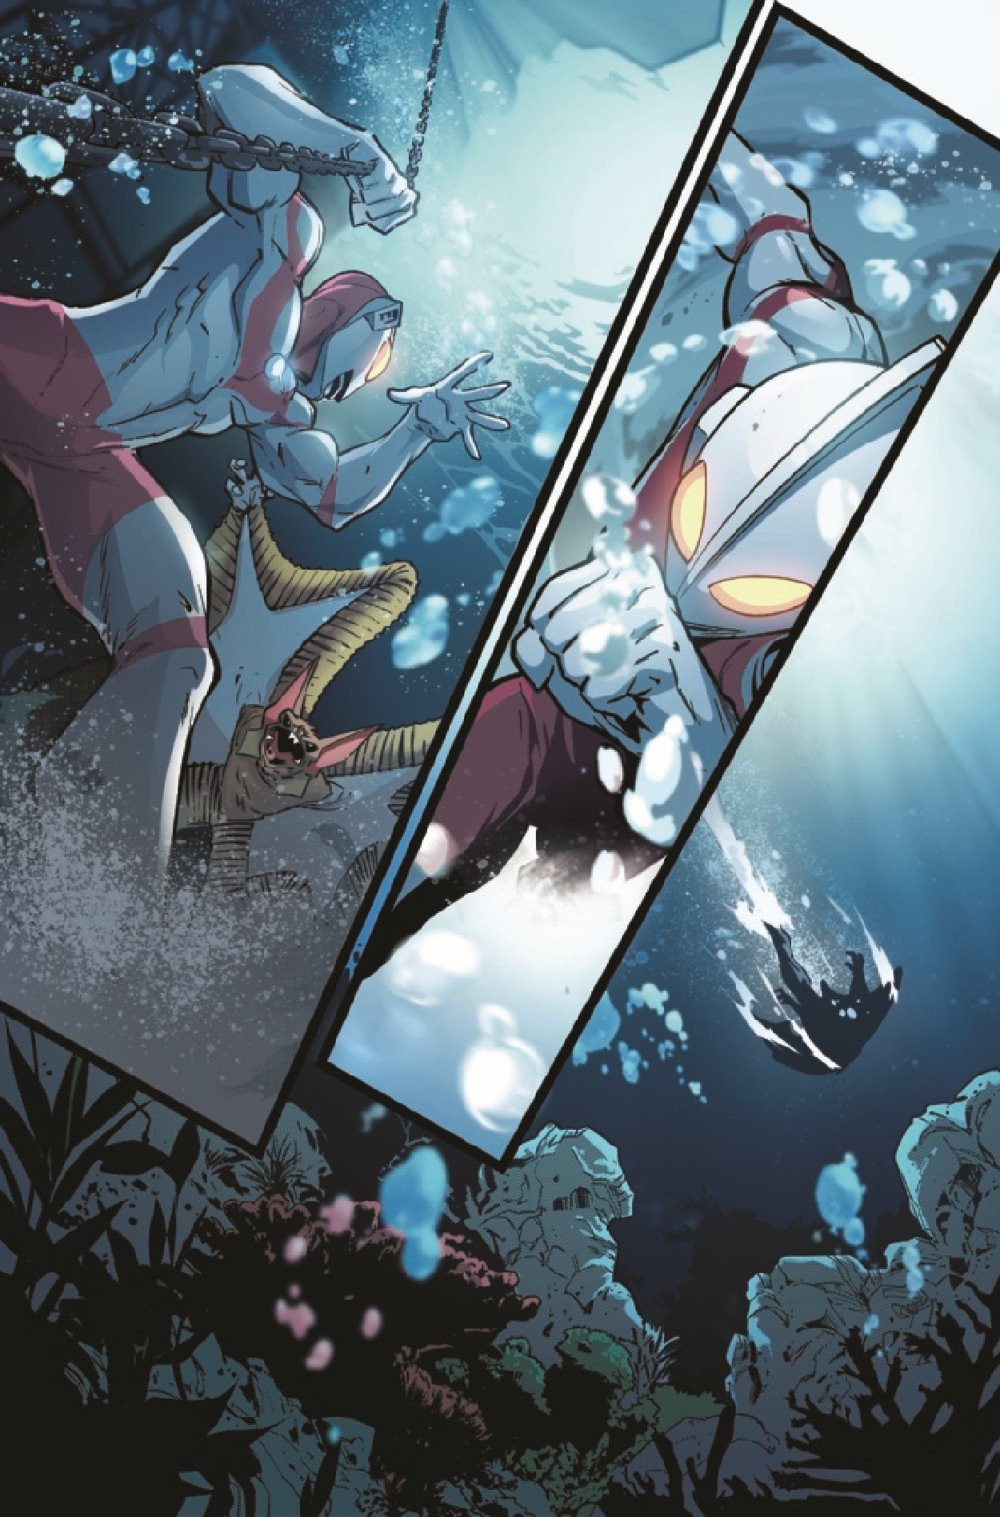 ULTRAMANTRIALS2021001_Preview-3 ComicList Previews: THE TRIALS OF ULTRAMAN #1 (OF 5)